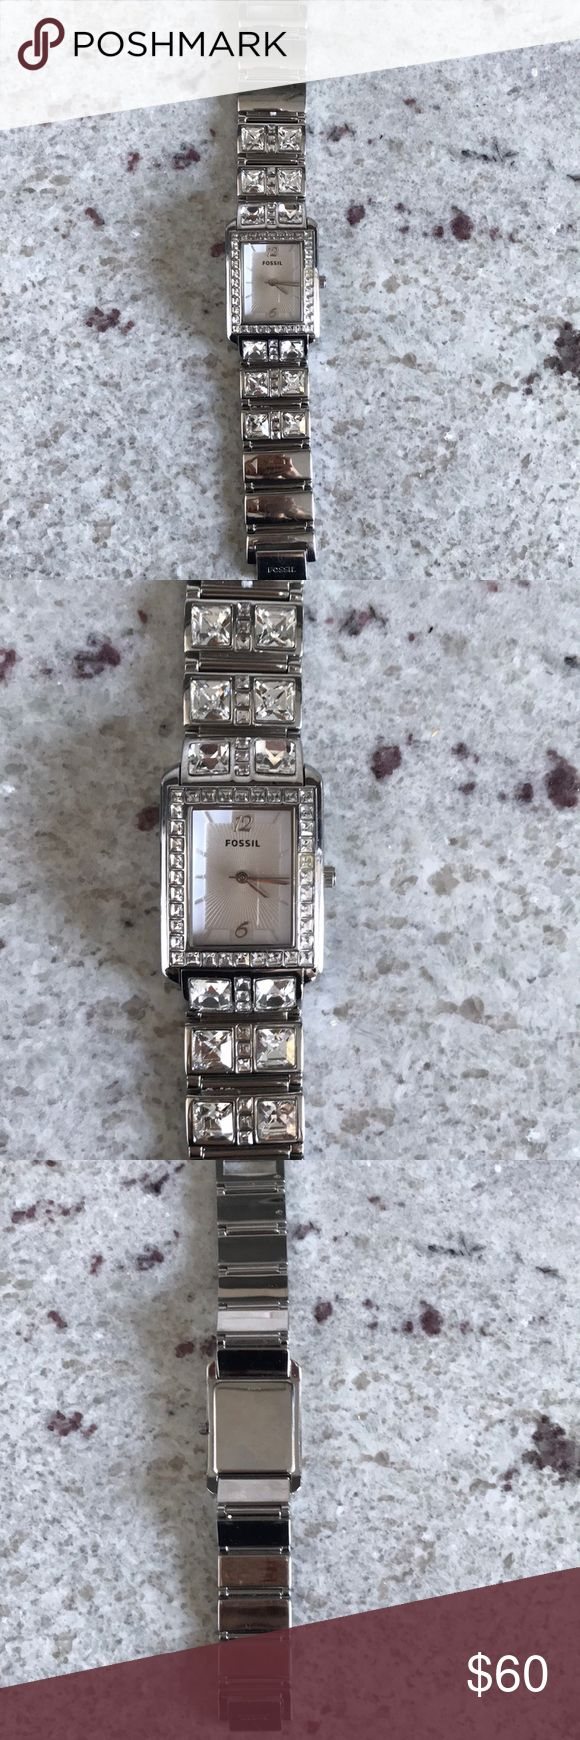 Fossil watch Silver Fossil watch. Good condition, just needs watch battery! Fossil Accessories Watches